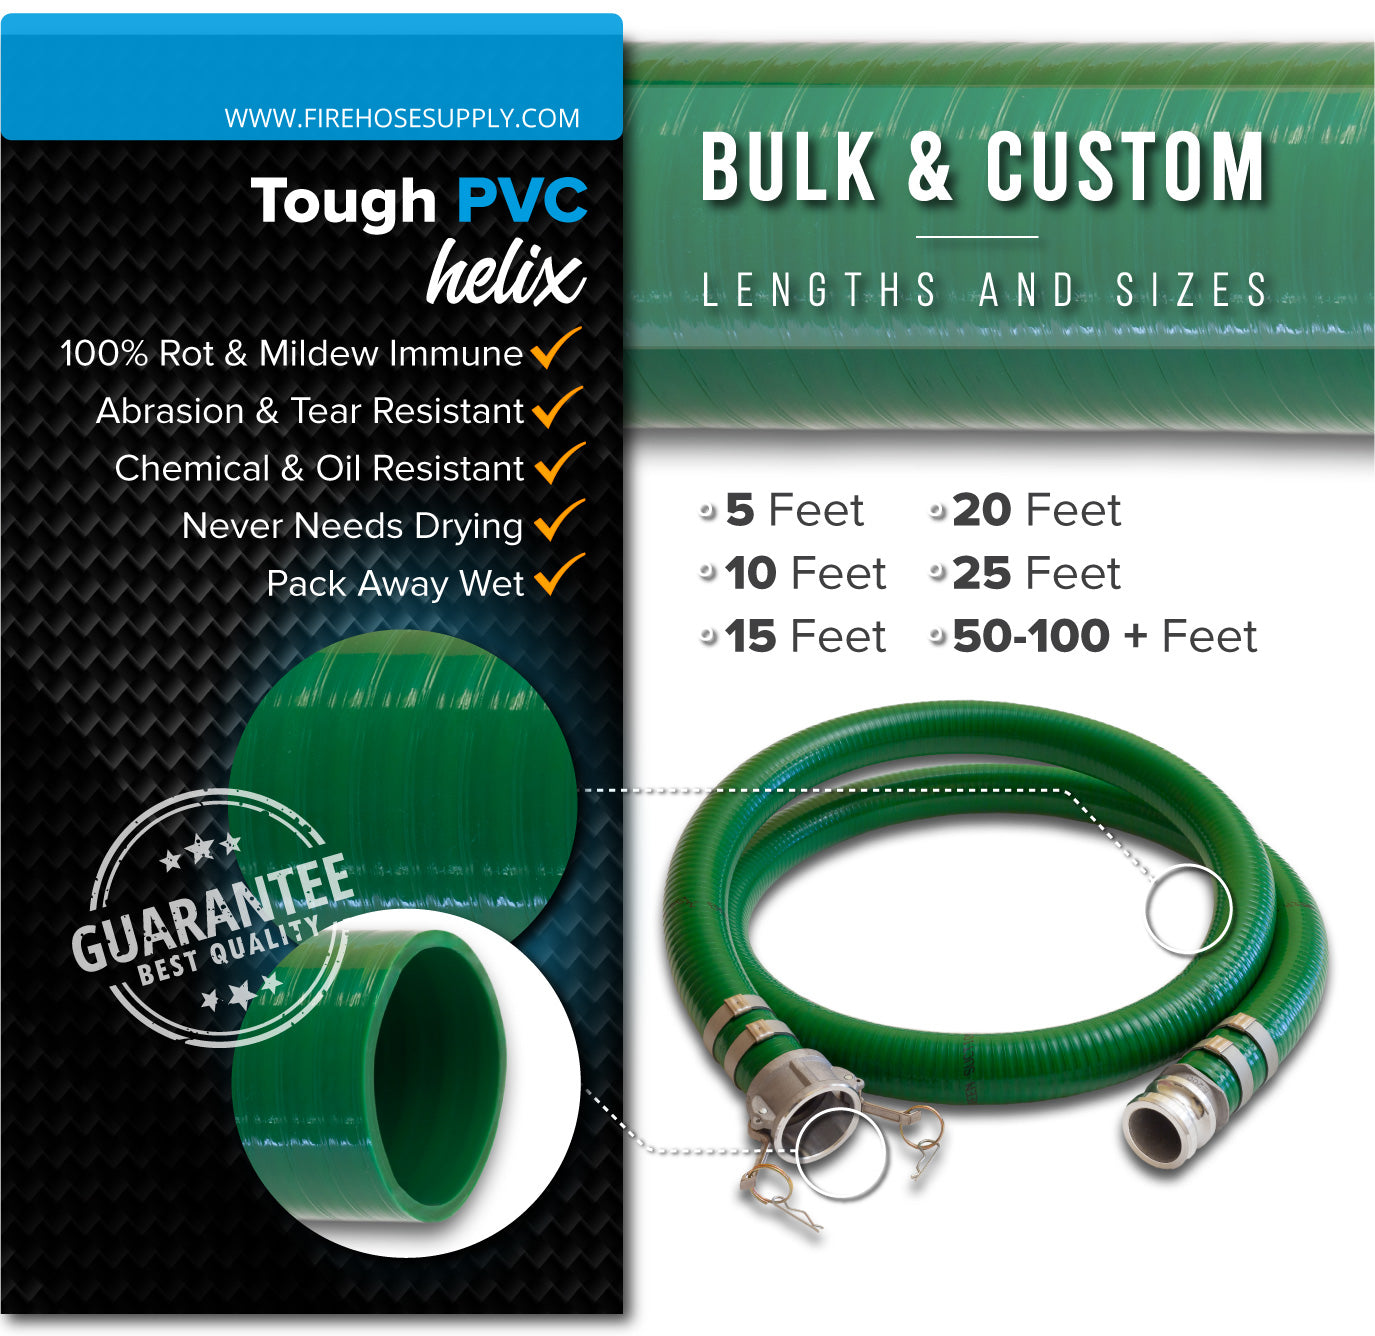 2 Inch Camlock Female x Male Green Suction Hose PVC Materials